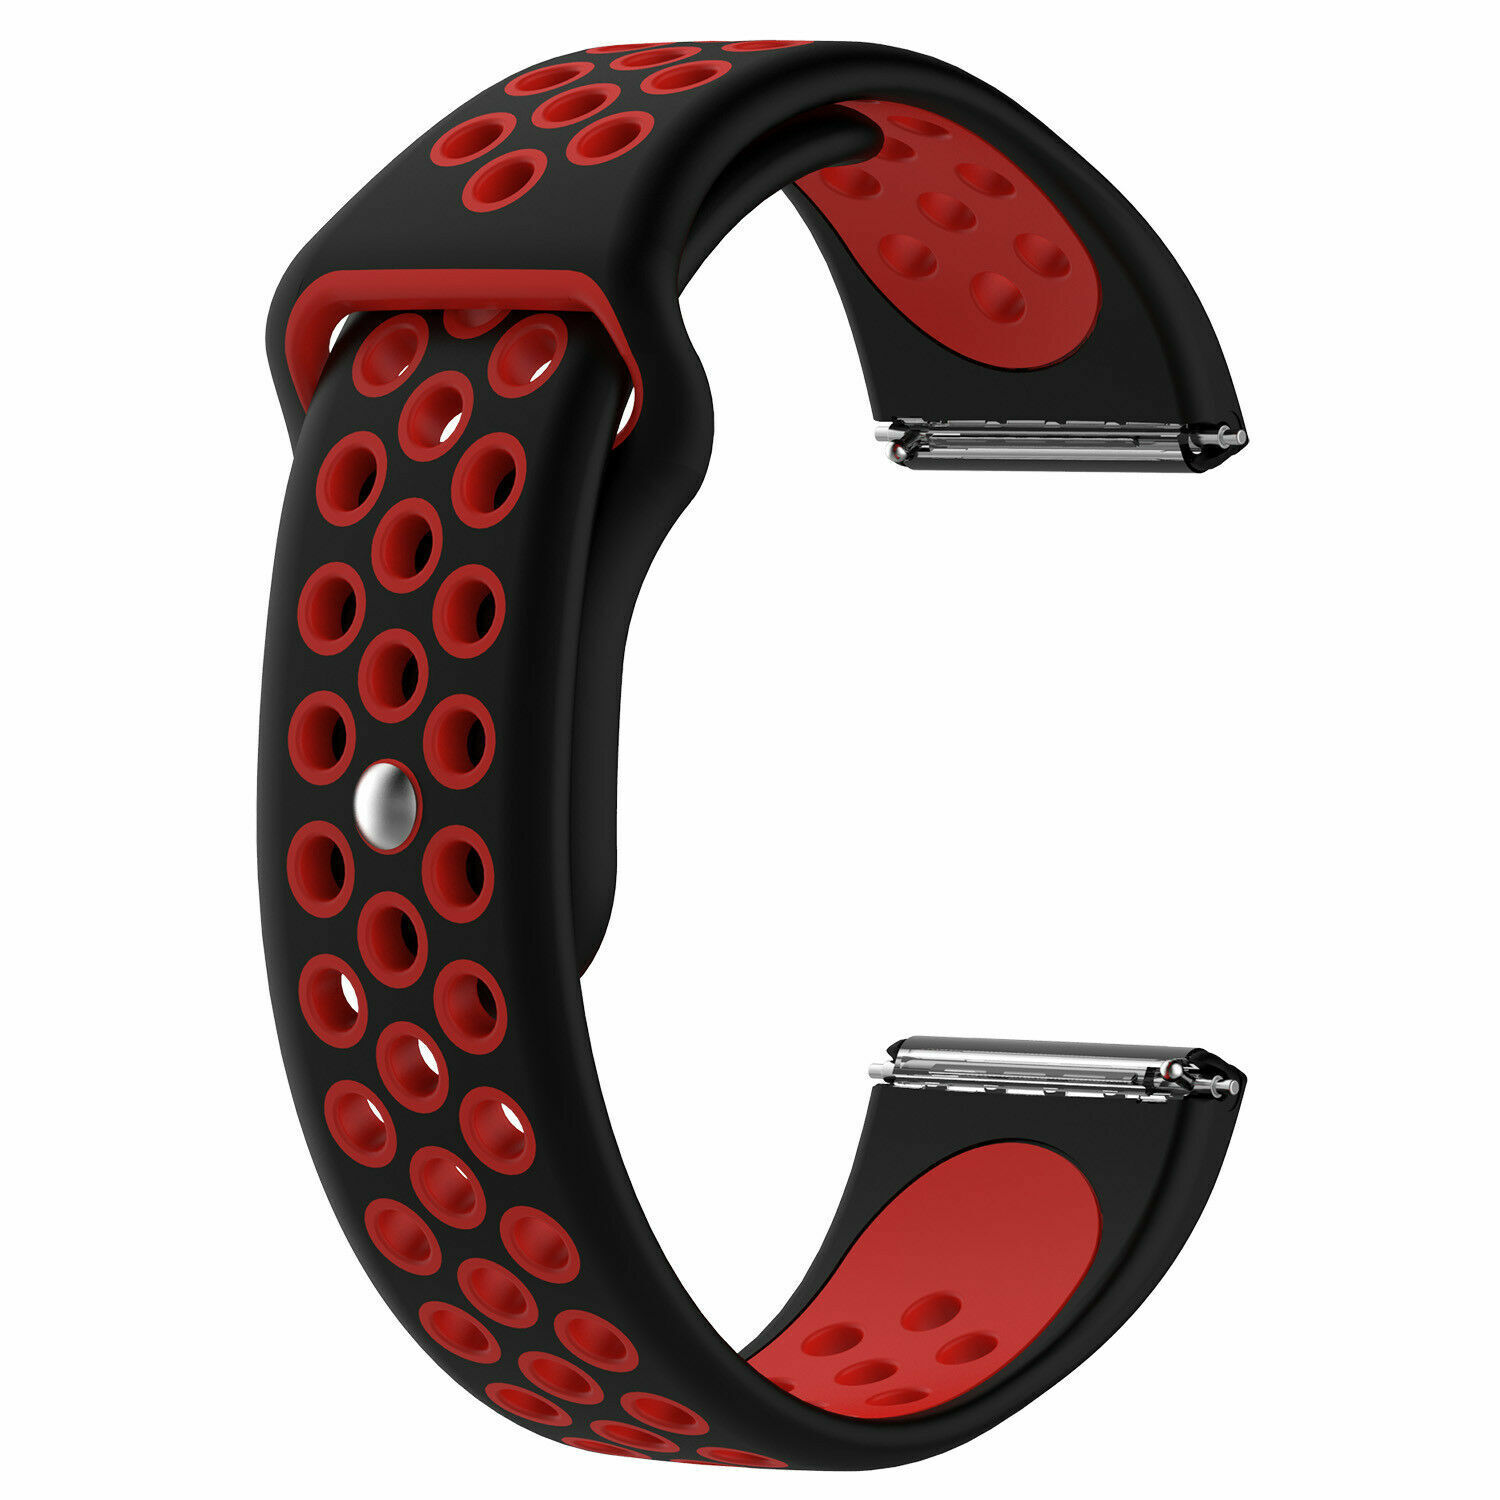 Sport Silicon Replacement Wristband Strap Breathable Watch Band For Fitbit Versa 8